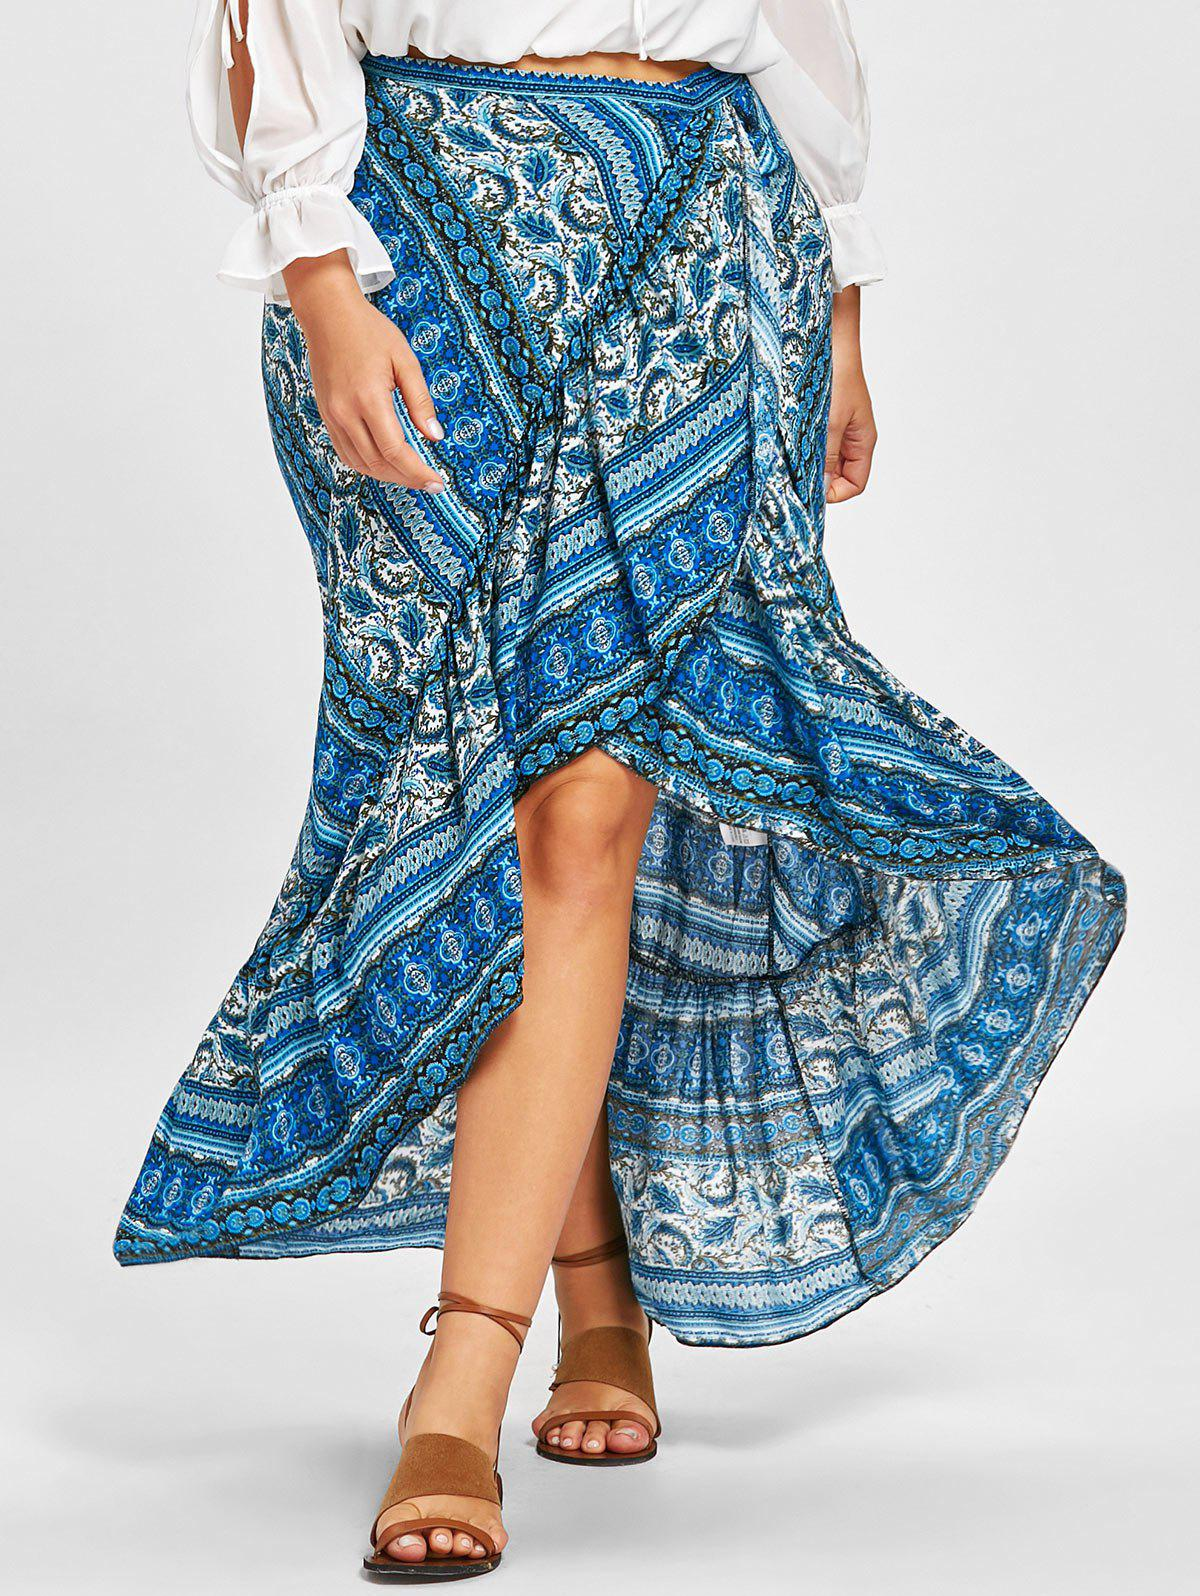 Bohemian Ruffle Plus Size Wrap Skirt - BLUE ONE SIZE